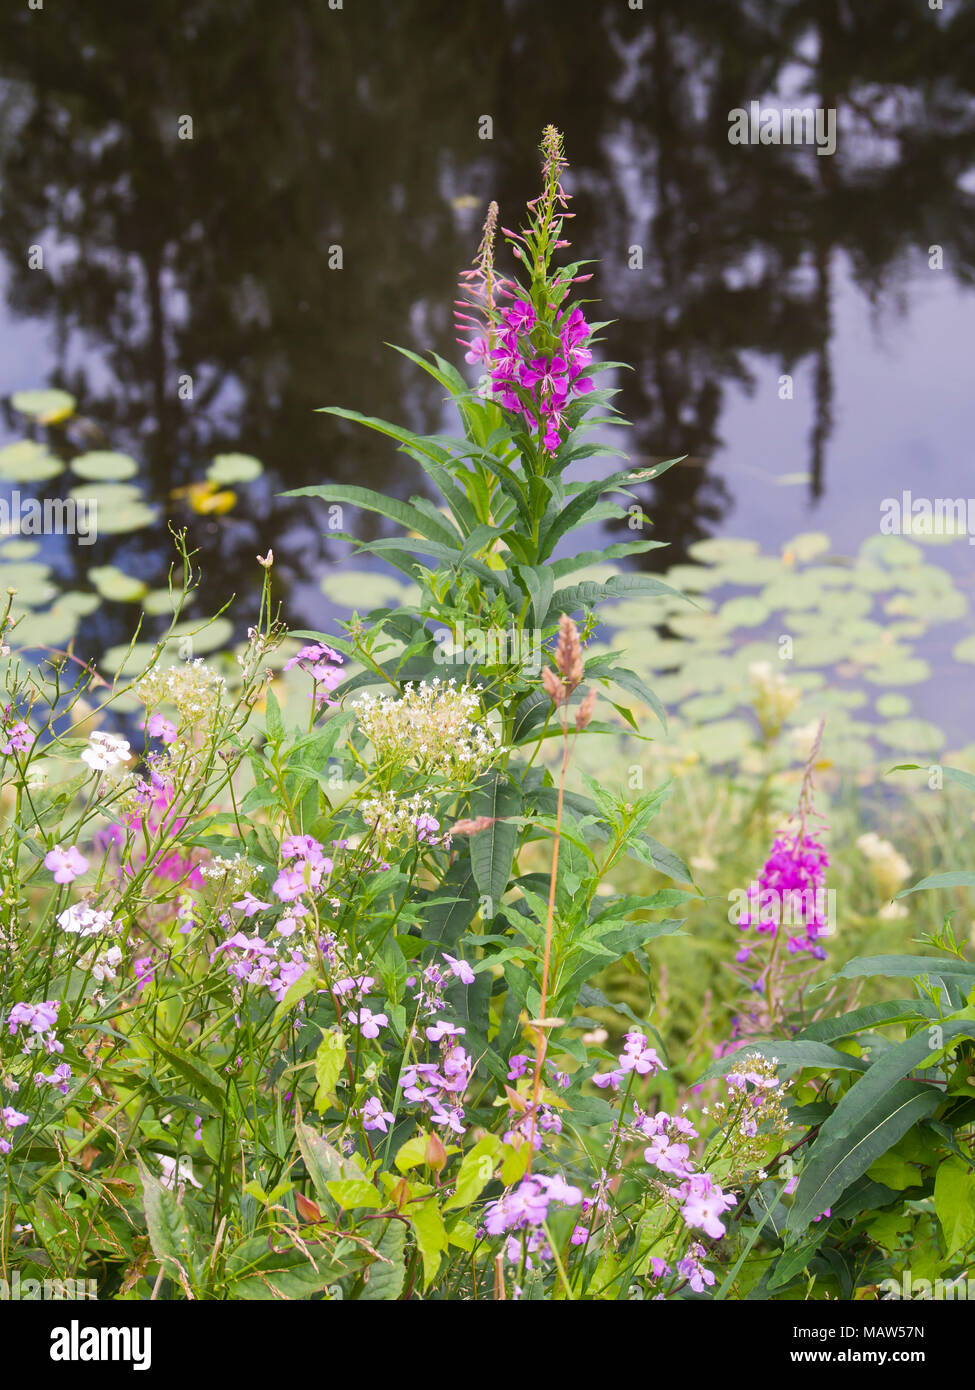 Rosebay, Chamaenerion angustifolium, strikingly pink wildflowers, natural beauty at the edge of a pond in Oslo Norway Stock Photo